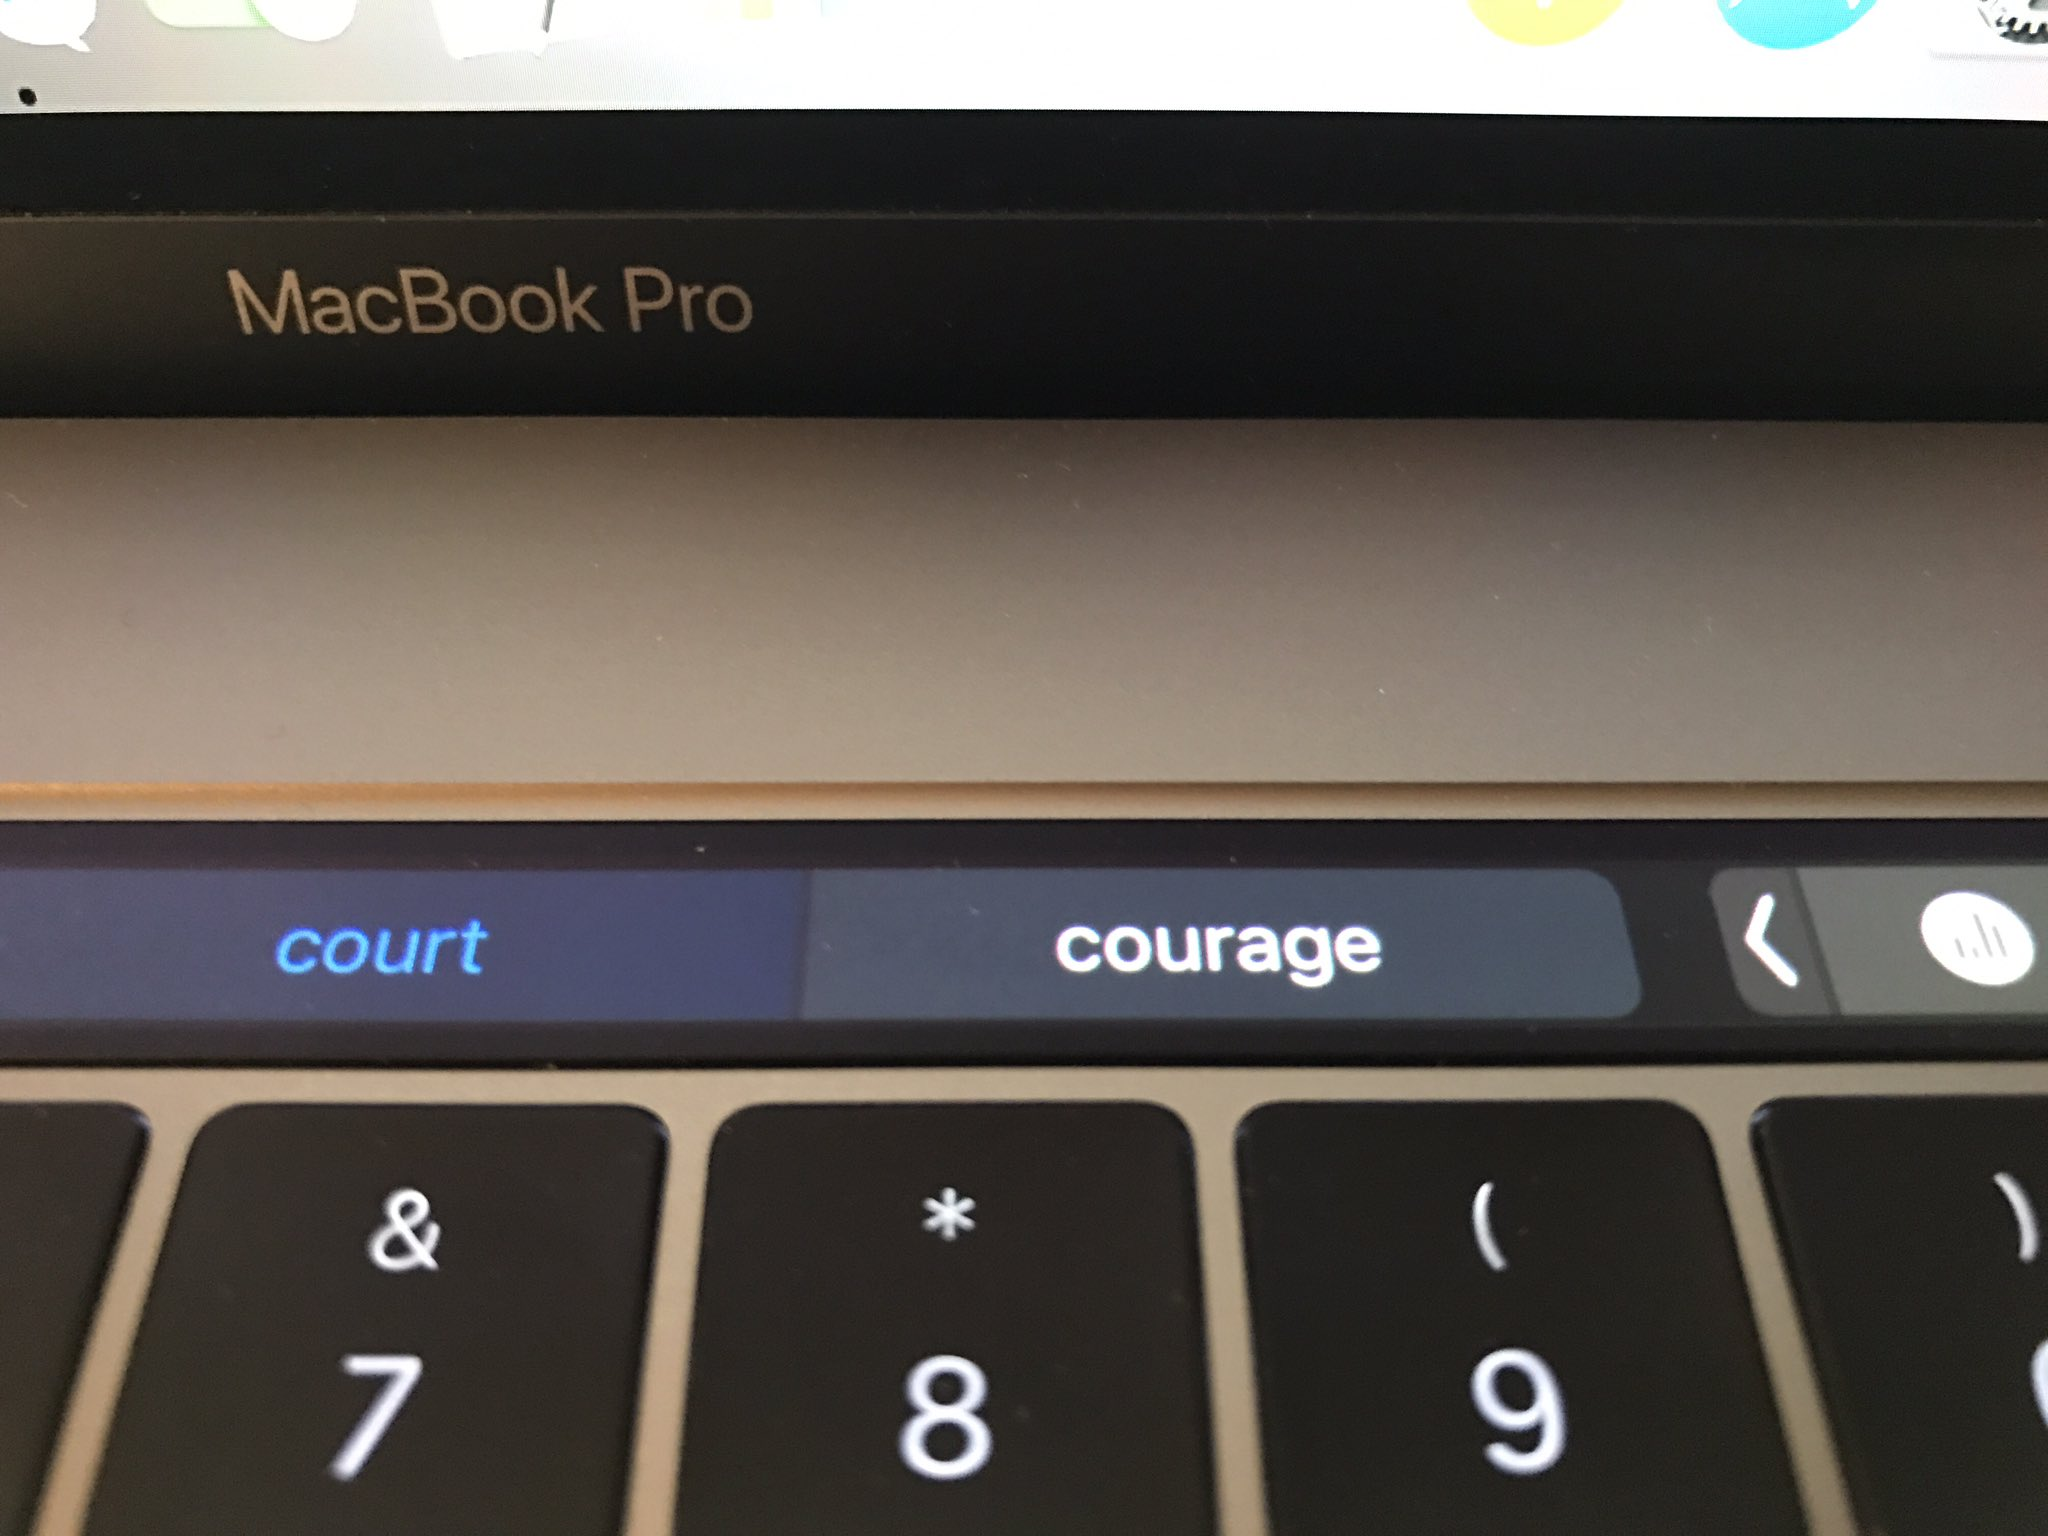 The Apple MacBook Touch Bar that replaced F keys is a fine example of solving a problem that didn't exist.